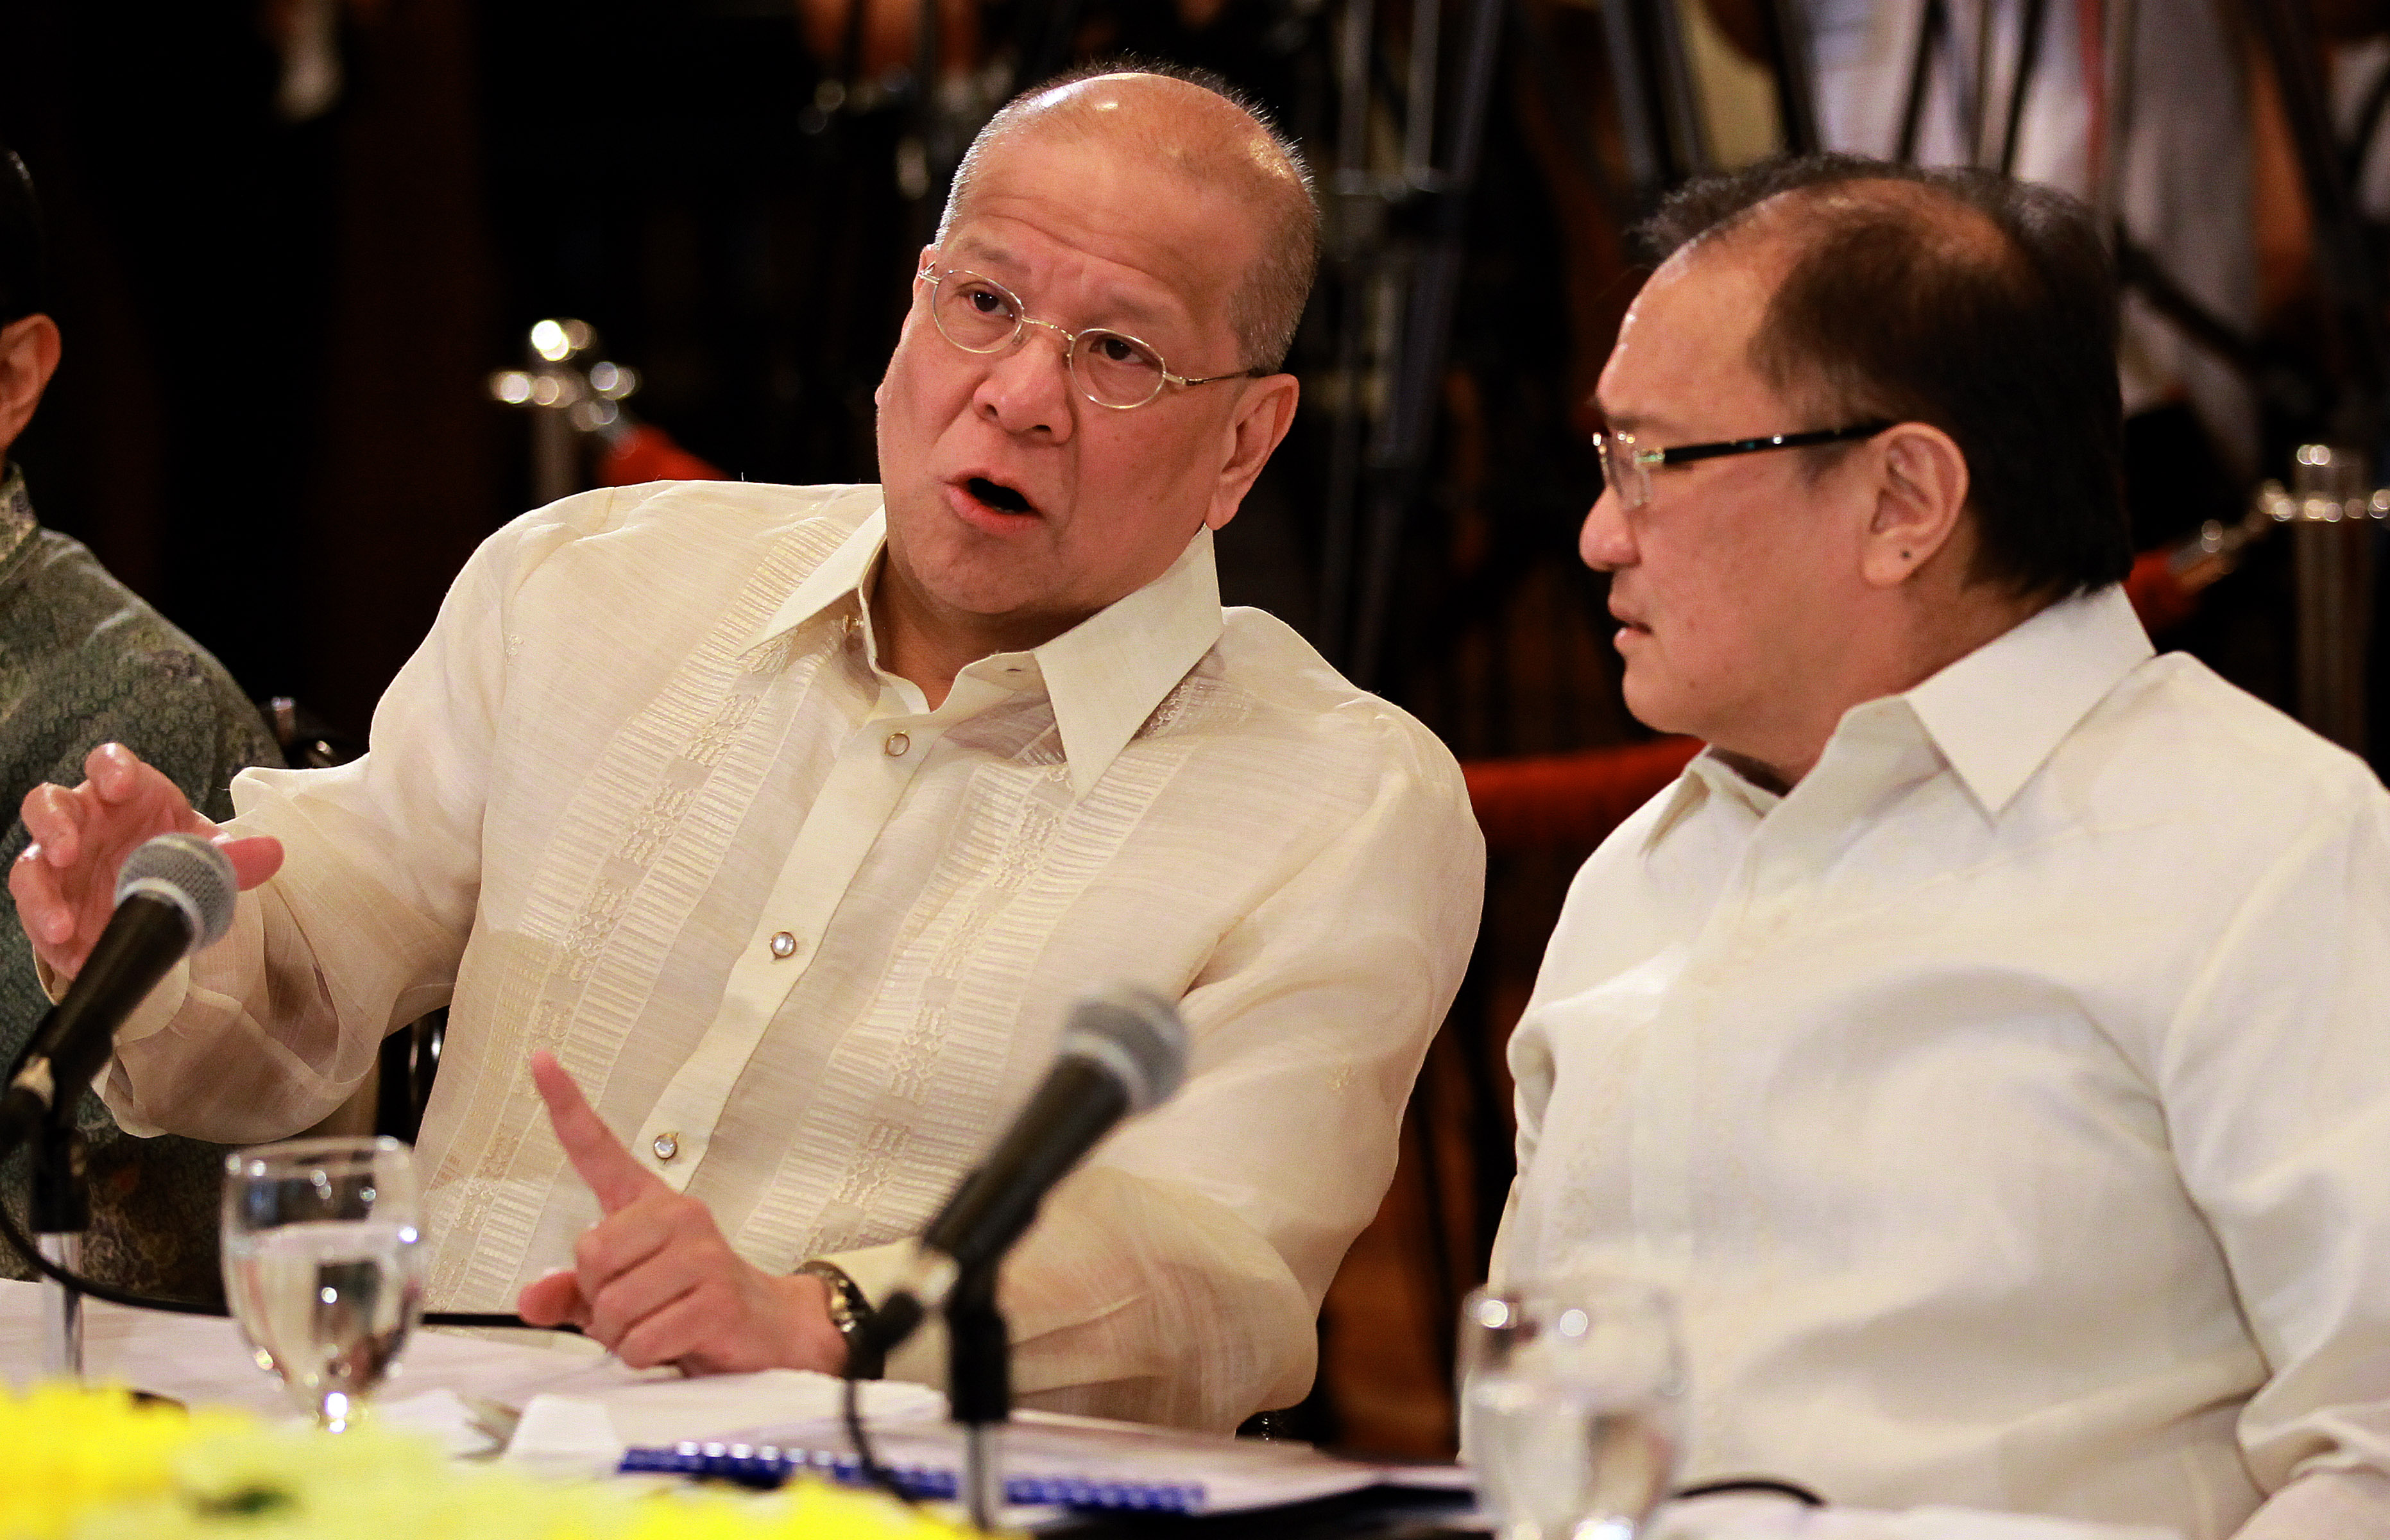 BUSINESS RIVALS. San Miguel president Ramon Ang and Metro Pacific Investments Chair Manuel Pangilinan exchange views on the NLEx-SLEx connector roads they proposed to the government in a presentation at Malacanang. Photo taken by Malacanang Photo Bureau